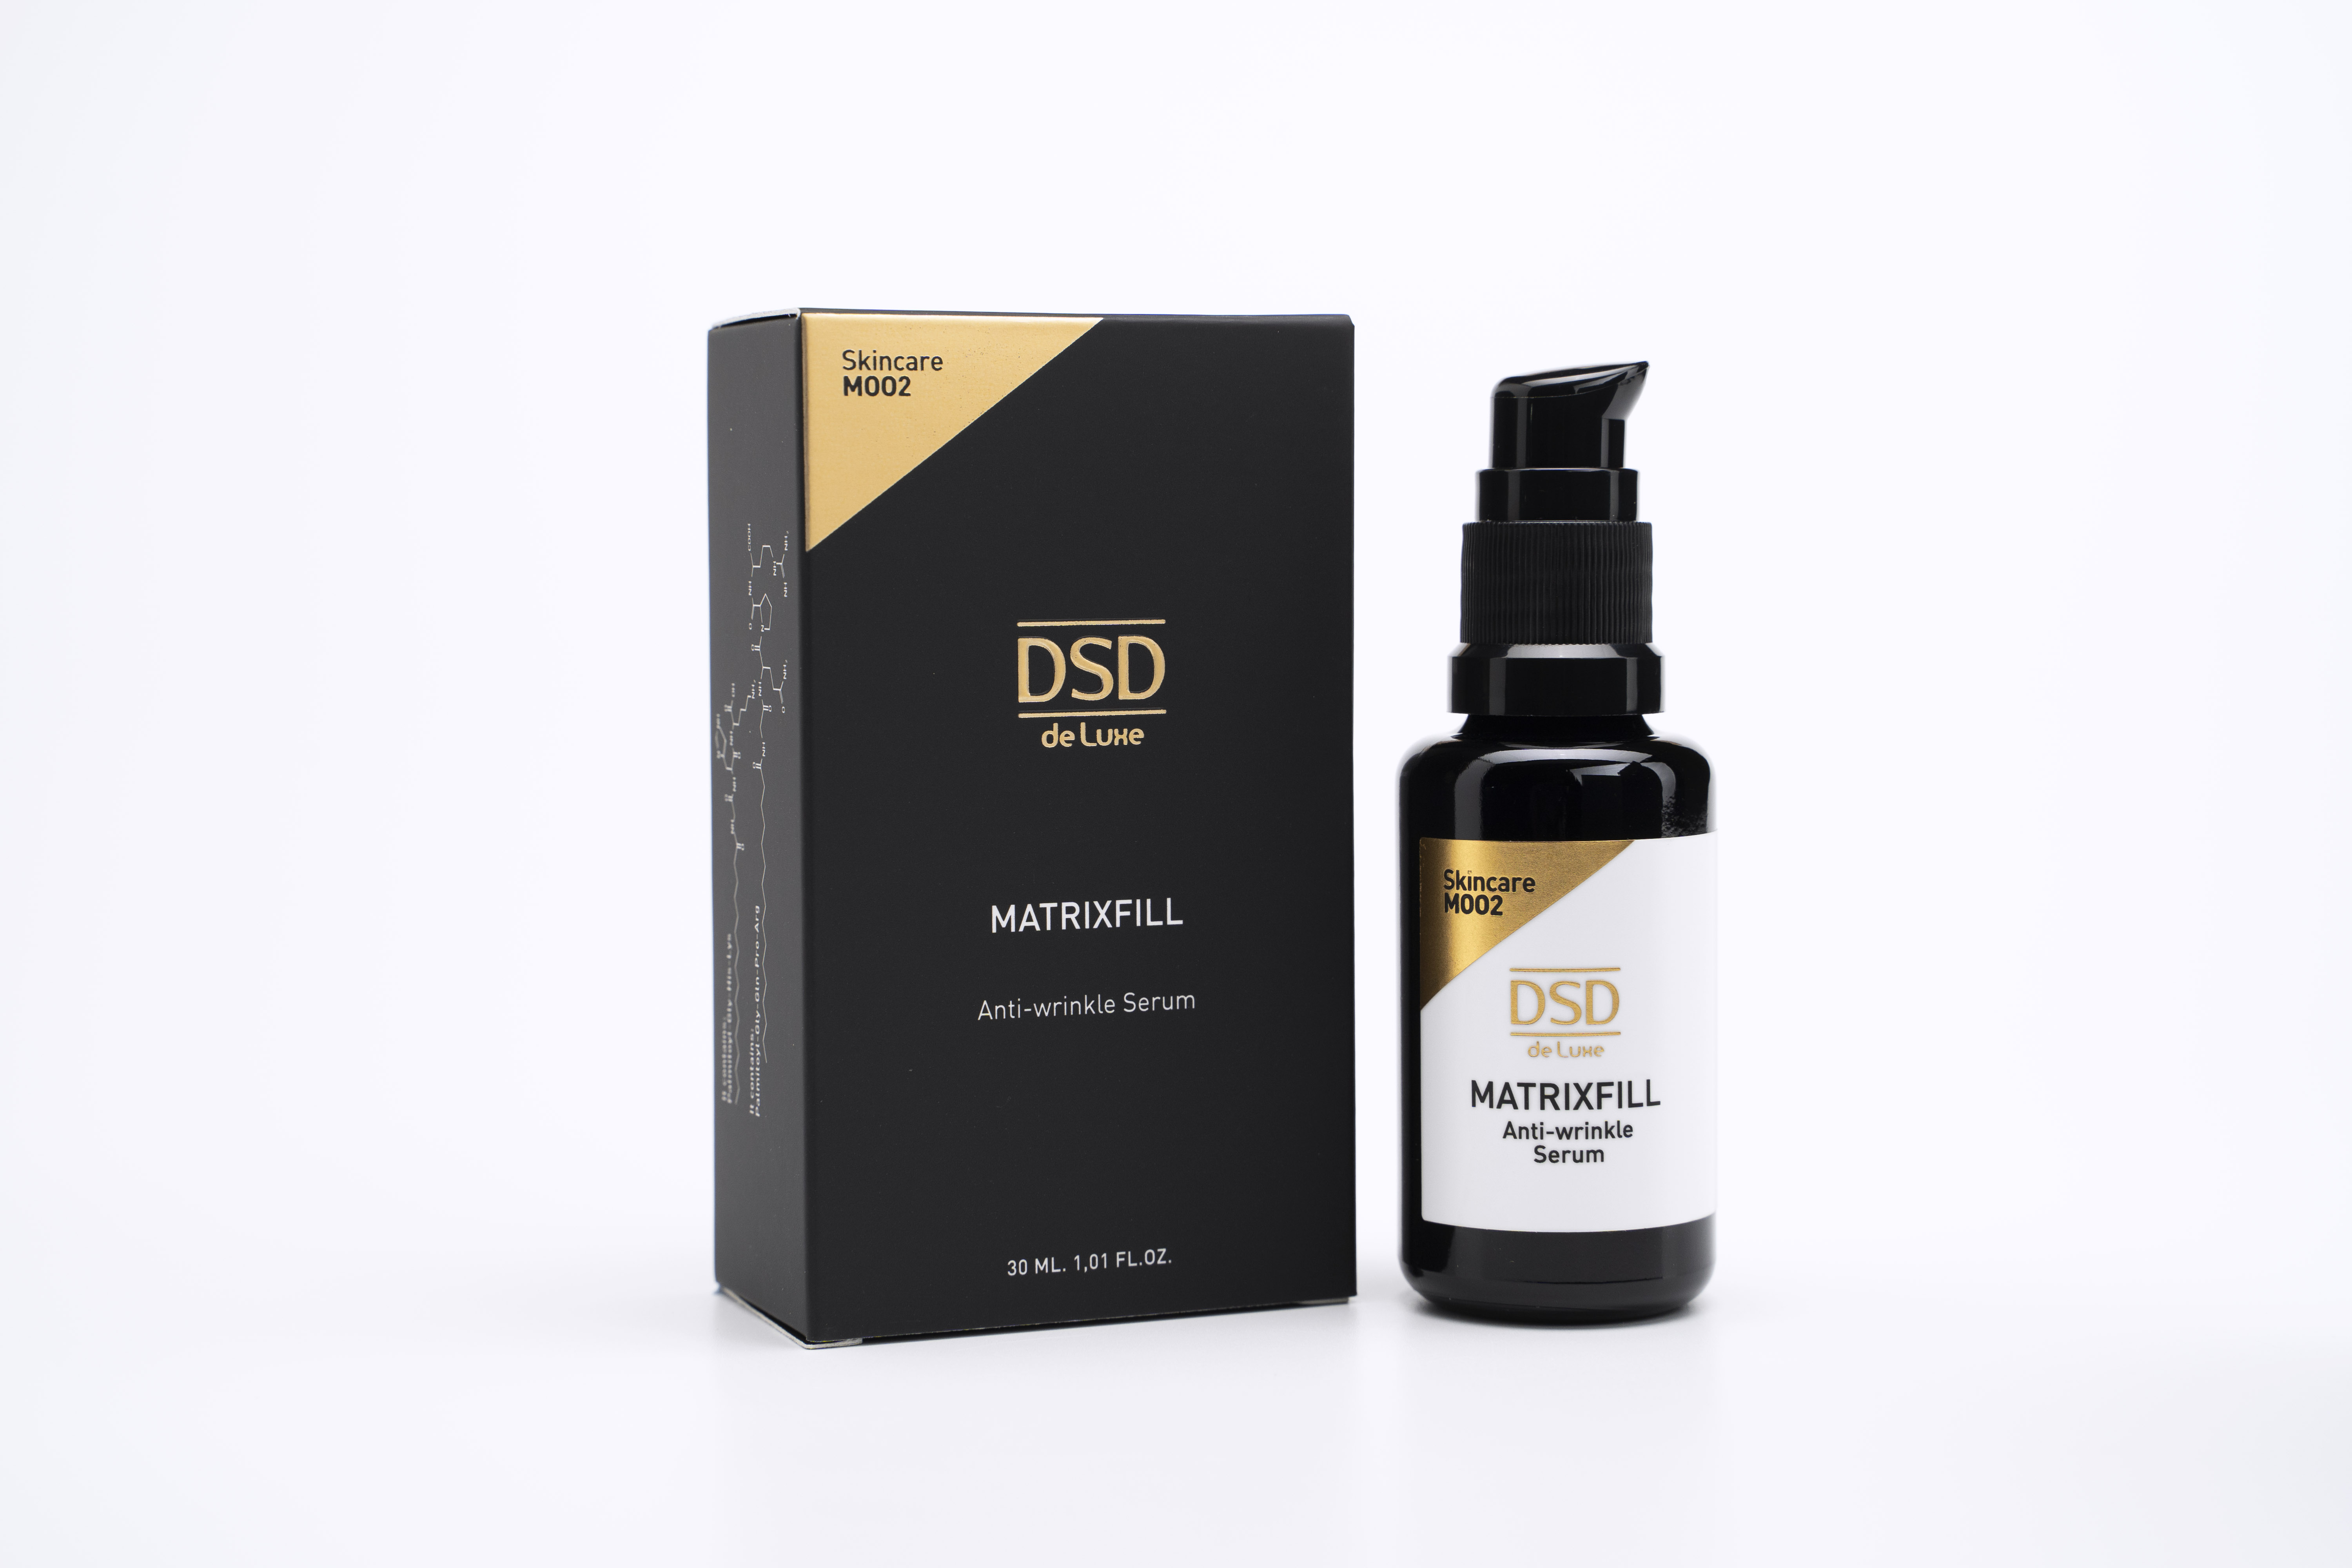 DSD DE LUXE GLOBAL ANTI-WRINKLE SERUM M002